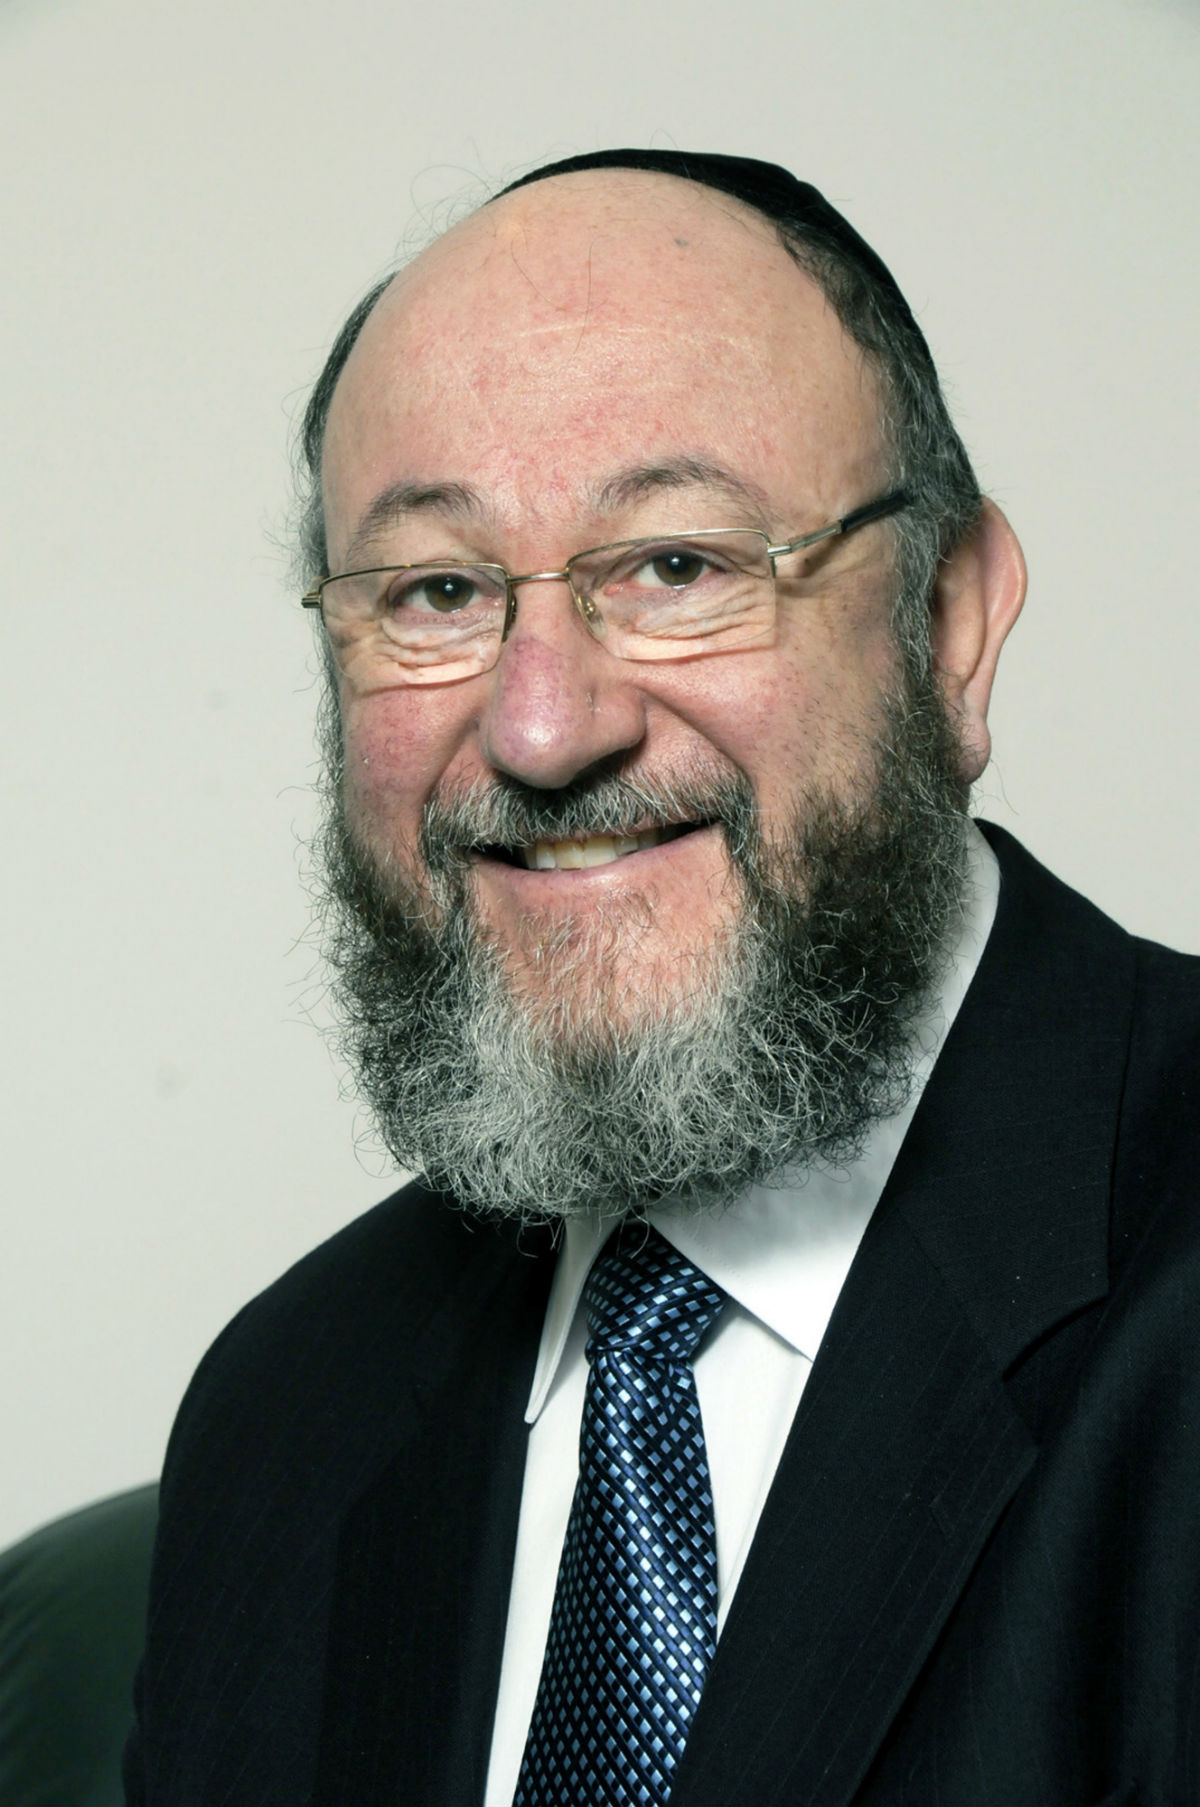 Rabbi Ephraim Mirvis, the Chief Rabbi of the United Hebrew Congregations of the Commonwealth of the United Kingdom.